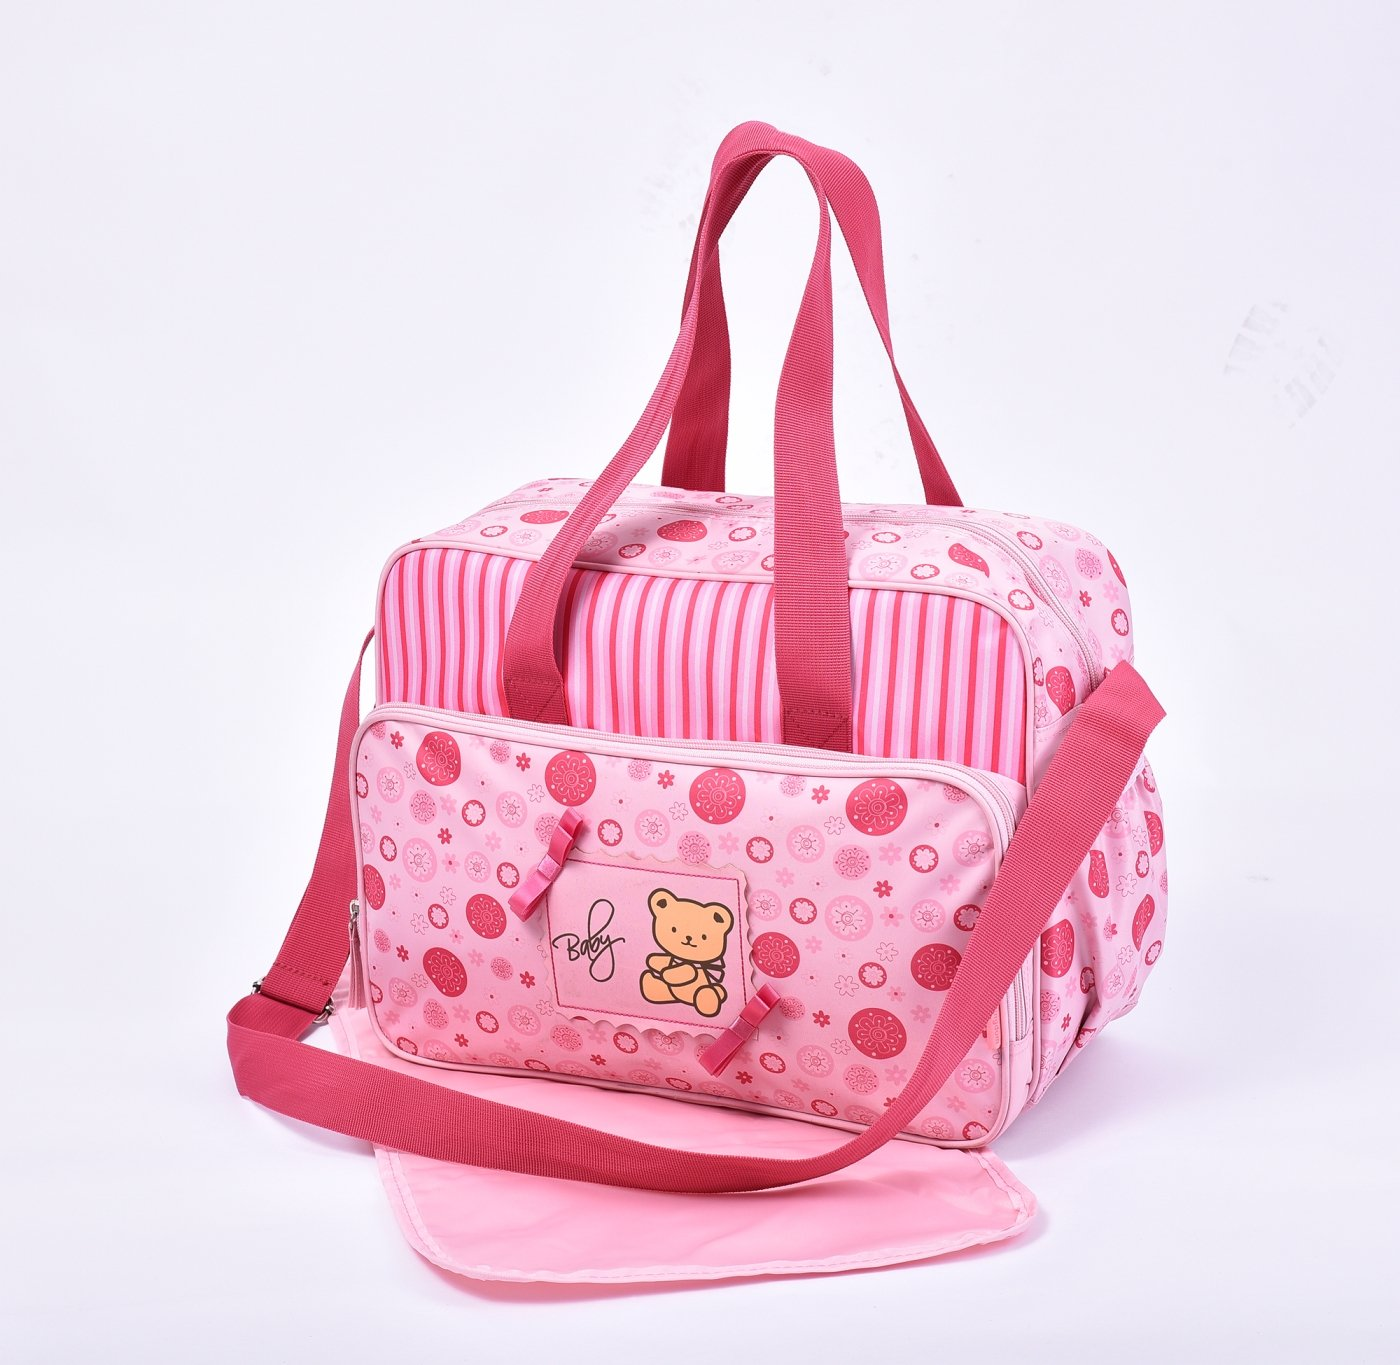 2160 Water Proof Waterproof Large Baby Nappy Changing Bags Diaper Hospital Bag (2160-Pink Bear)